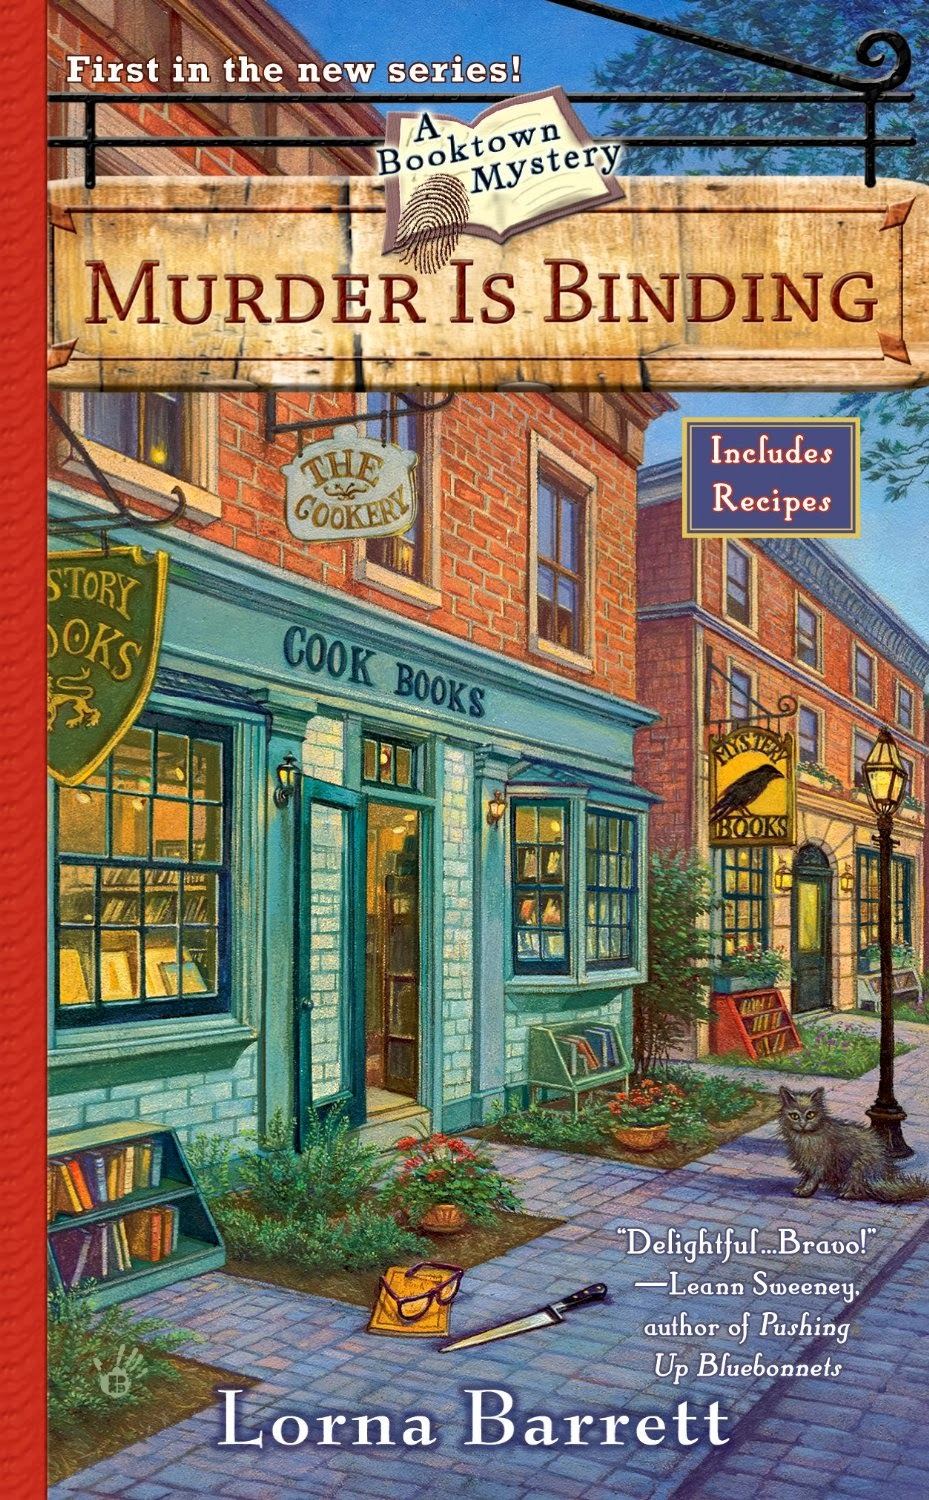 Murder is Binding by Lorna Barrett cover